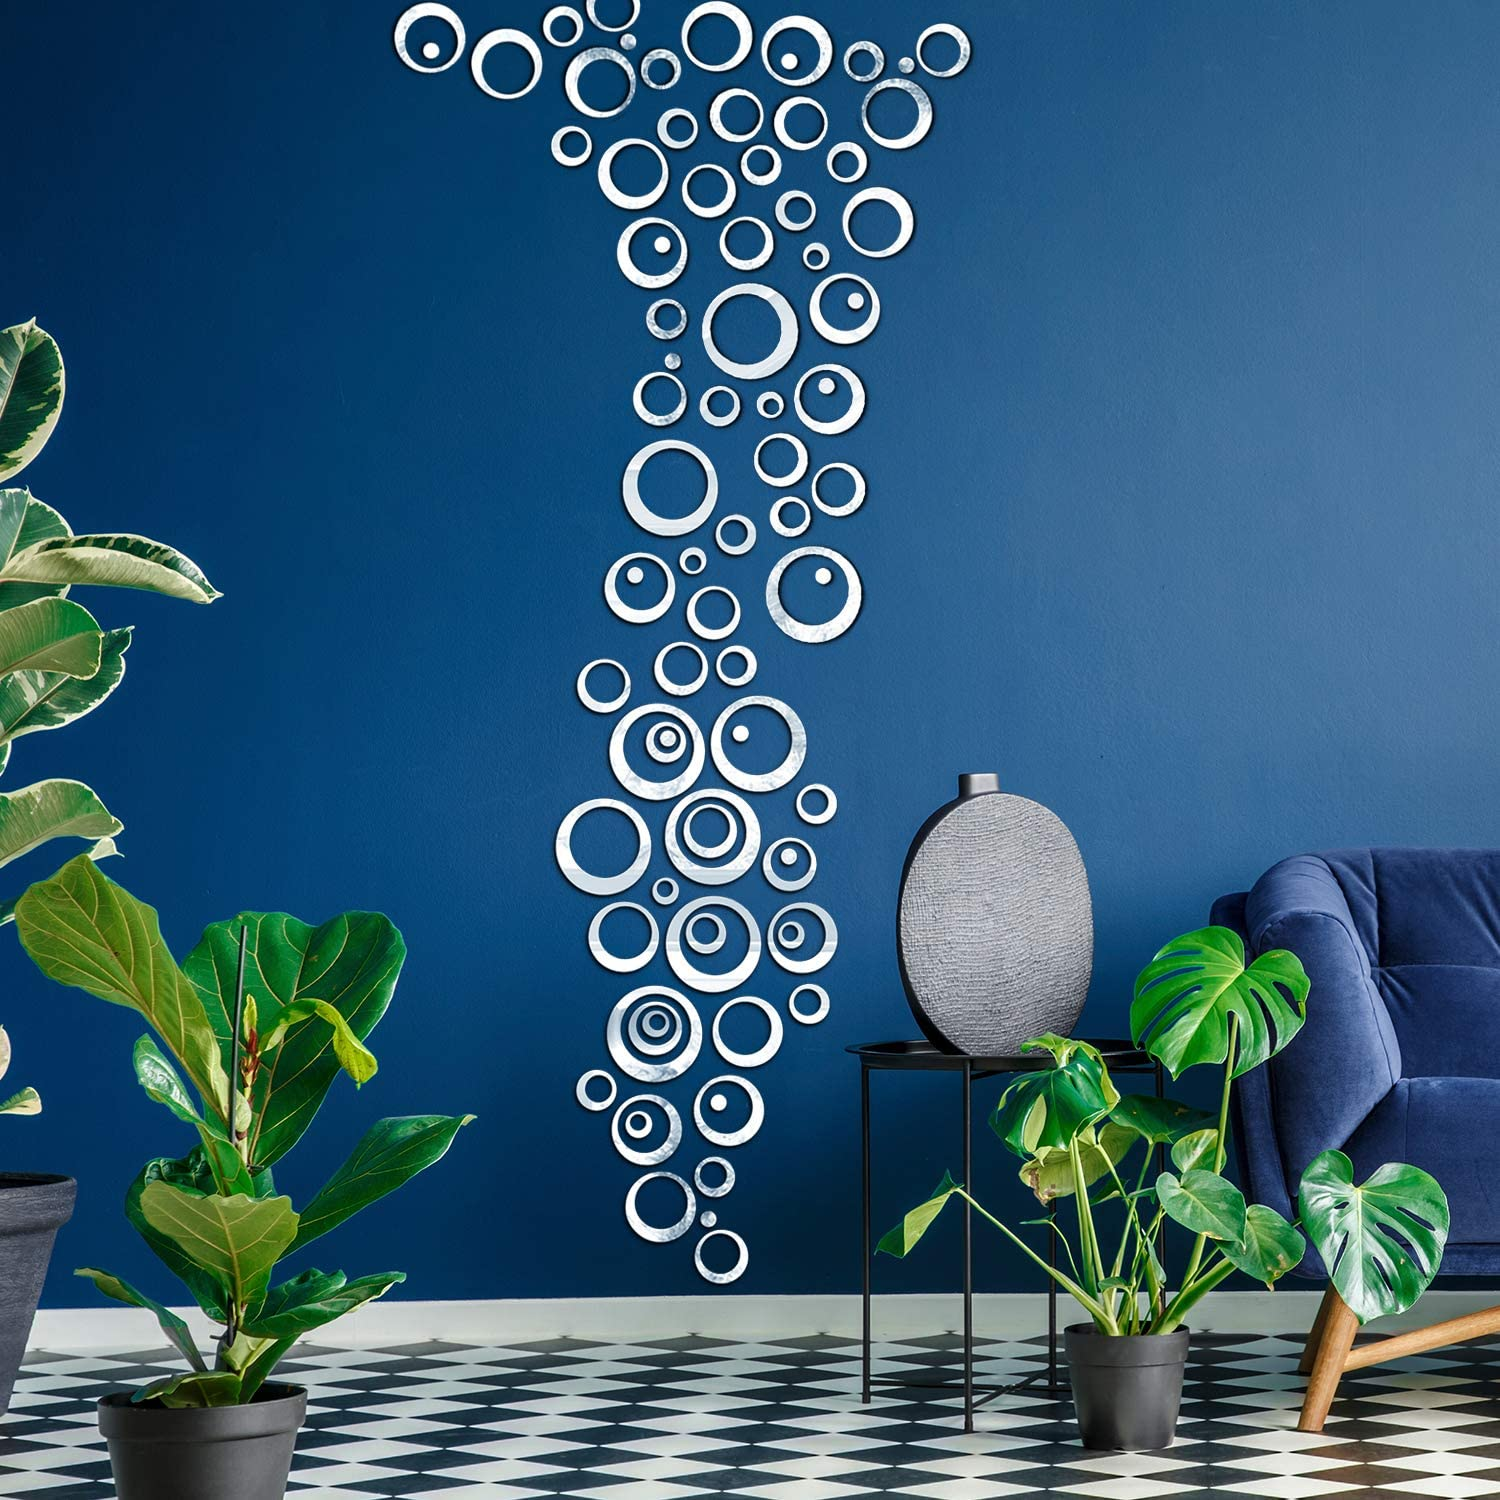 DIY Round Acrylic Mirror Effect Sticker Removable Wall Sticker Home Decor //ND